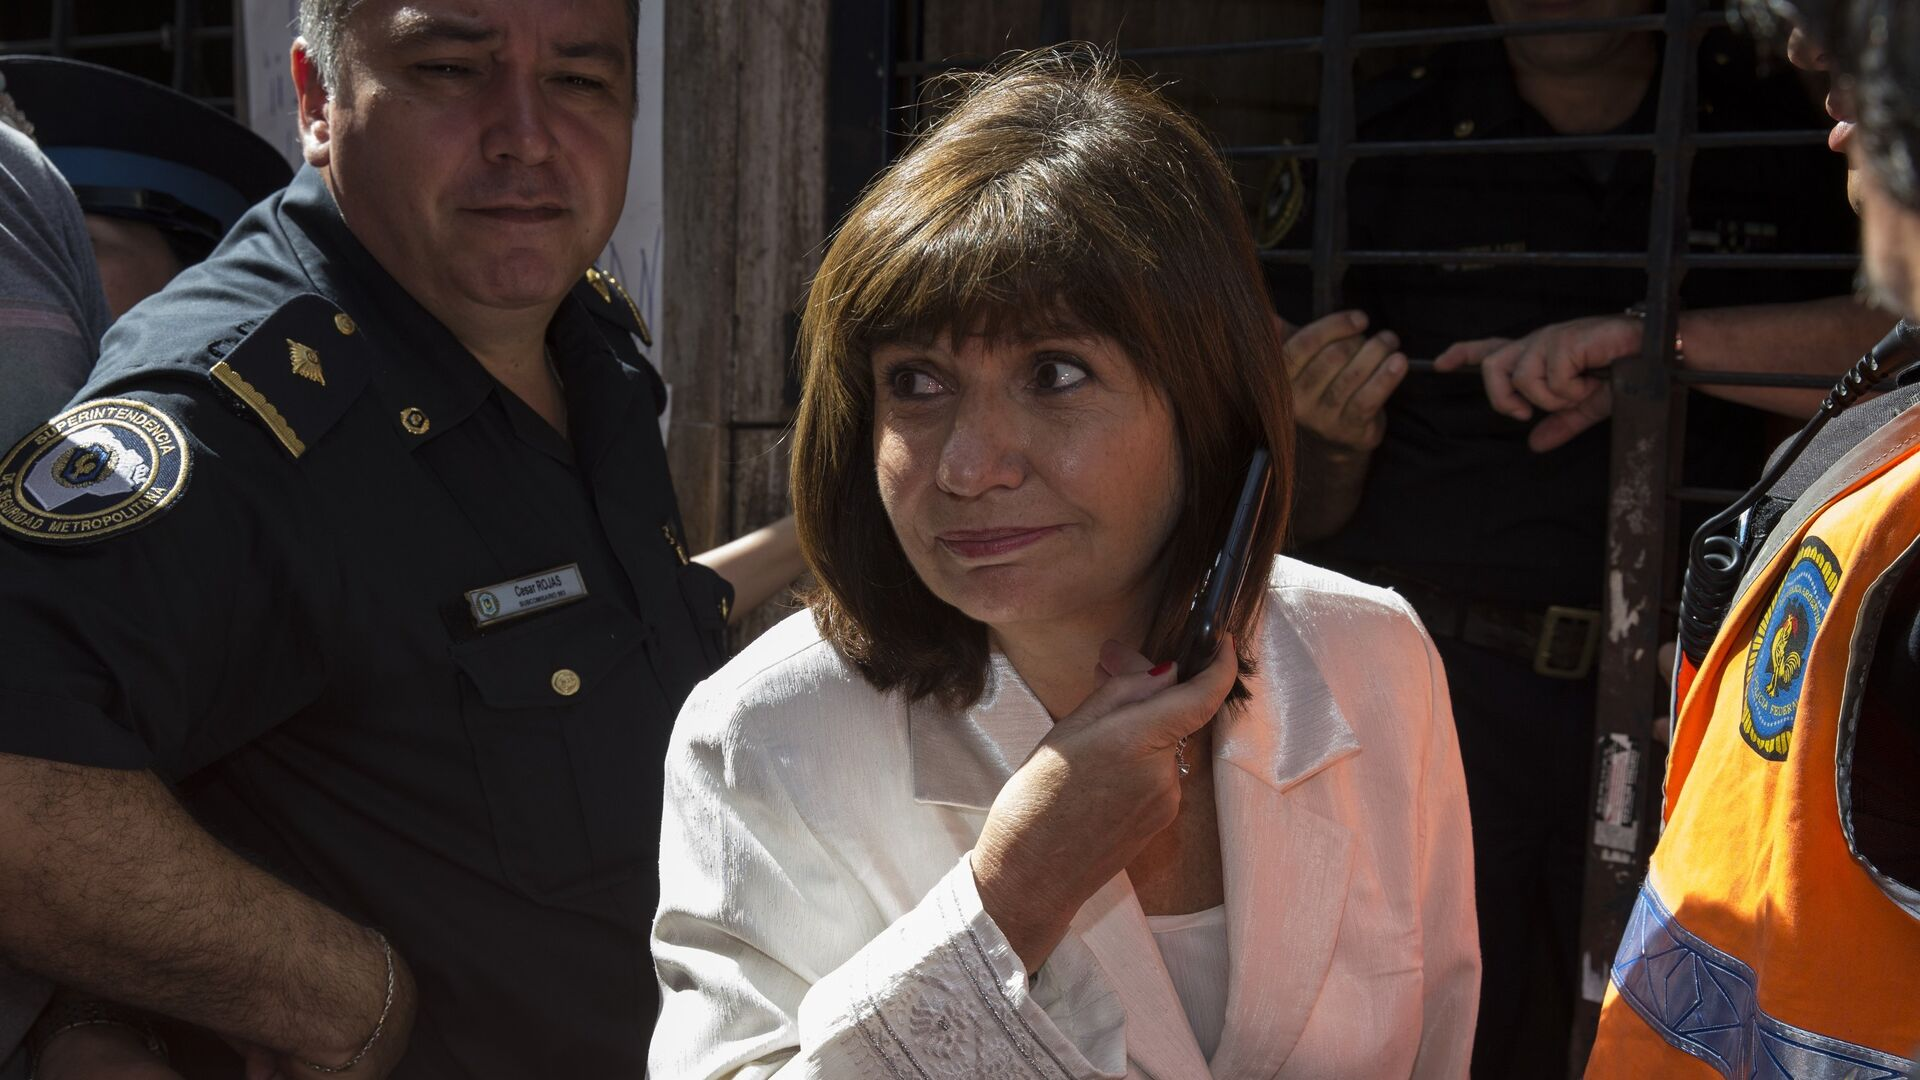 Congresswoman Patricia Bullrich enters the office of prosecutor Viviana Fein, who is investigating special prosecutor Alberto Nisman's death, in Buenos Aires - Sputnik Mundo, 1920, 28.04.2021